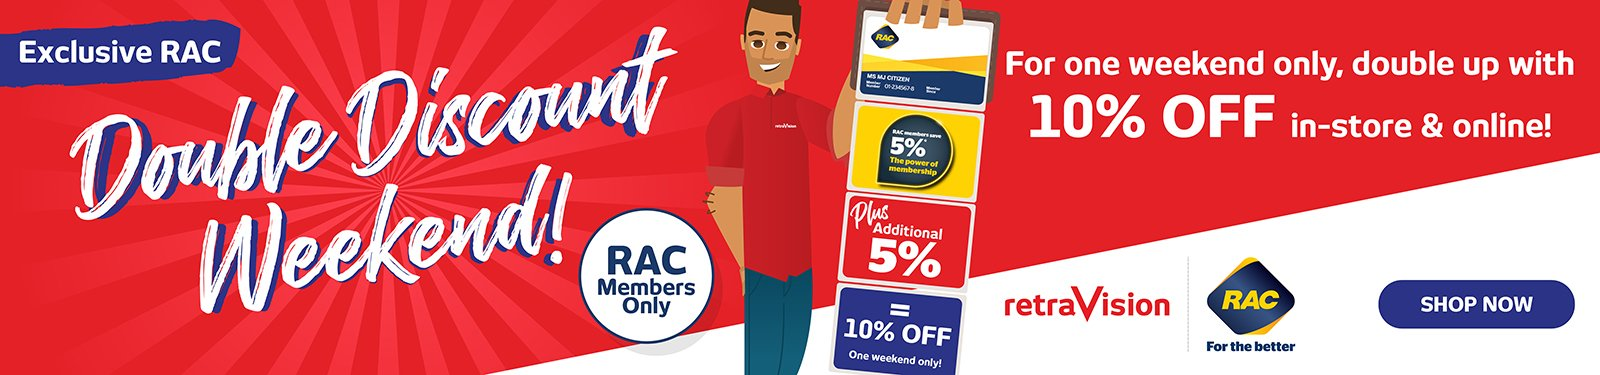 RAC Double Discount Weekend Sale